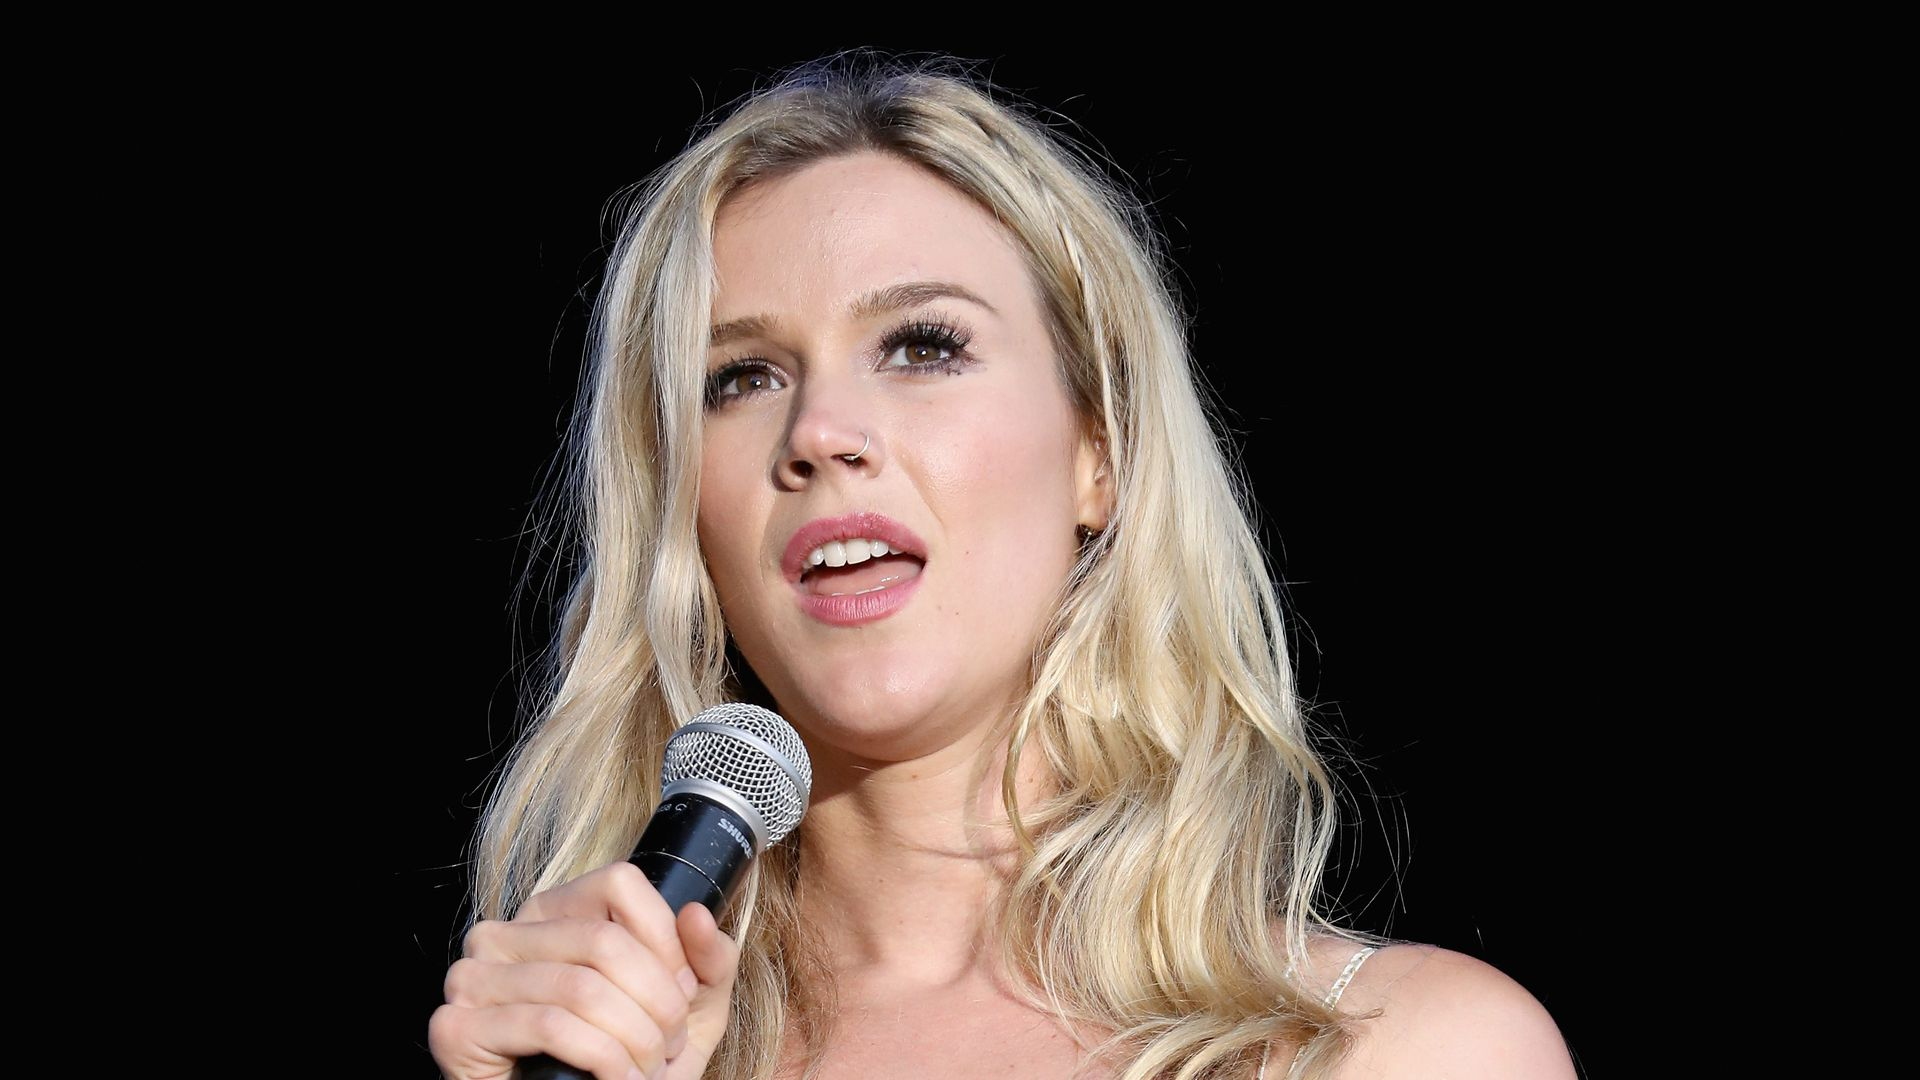 JOSS STONE Performs at Summerfest Music Festival 2017 in